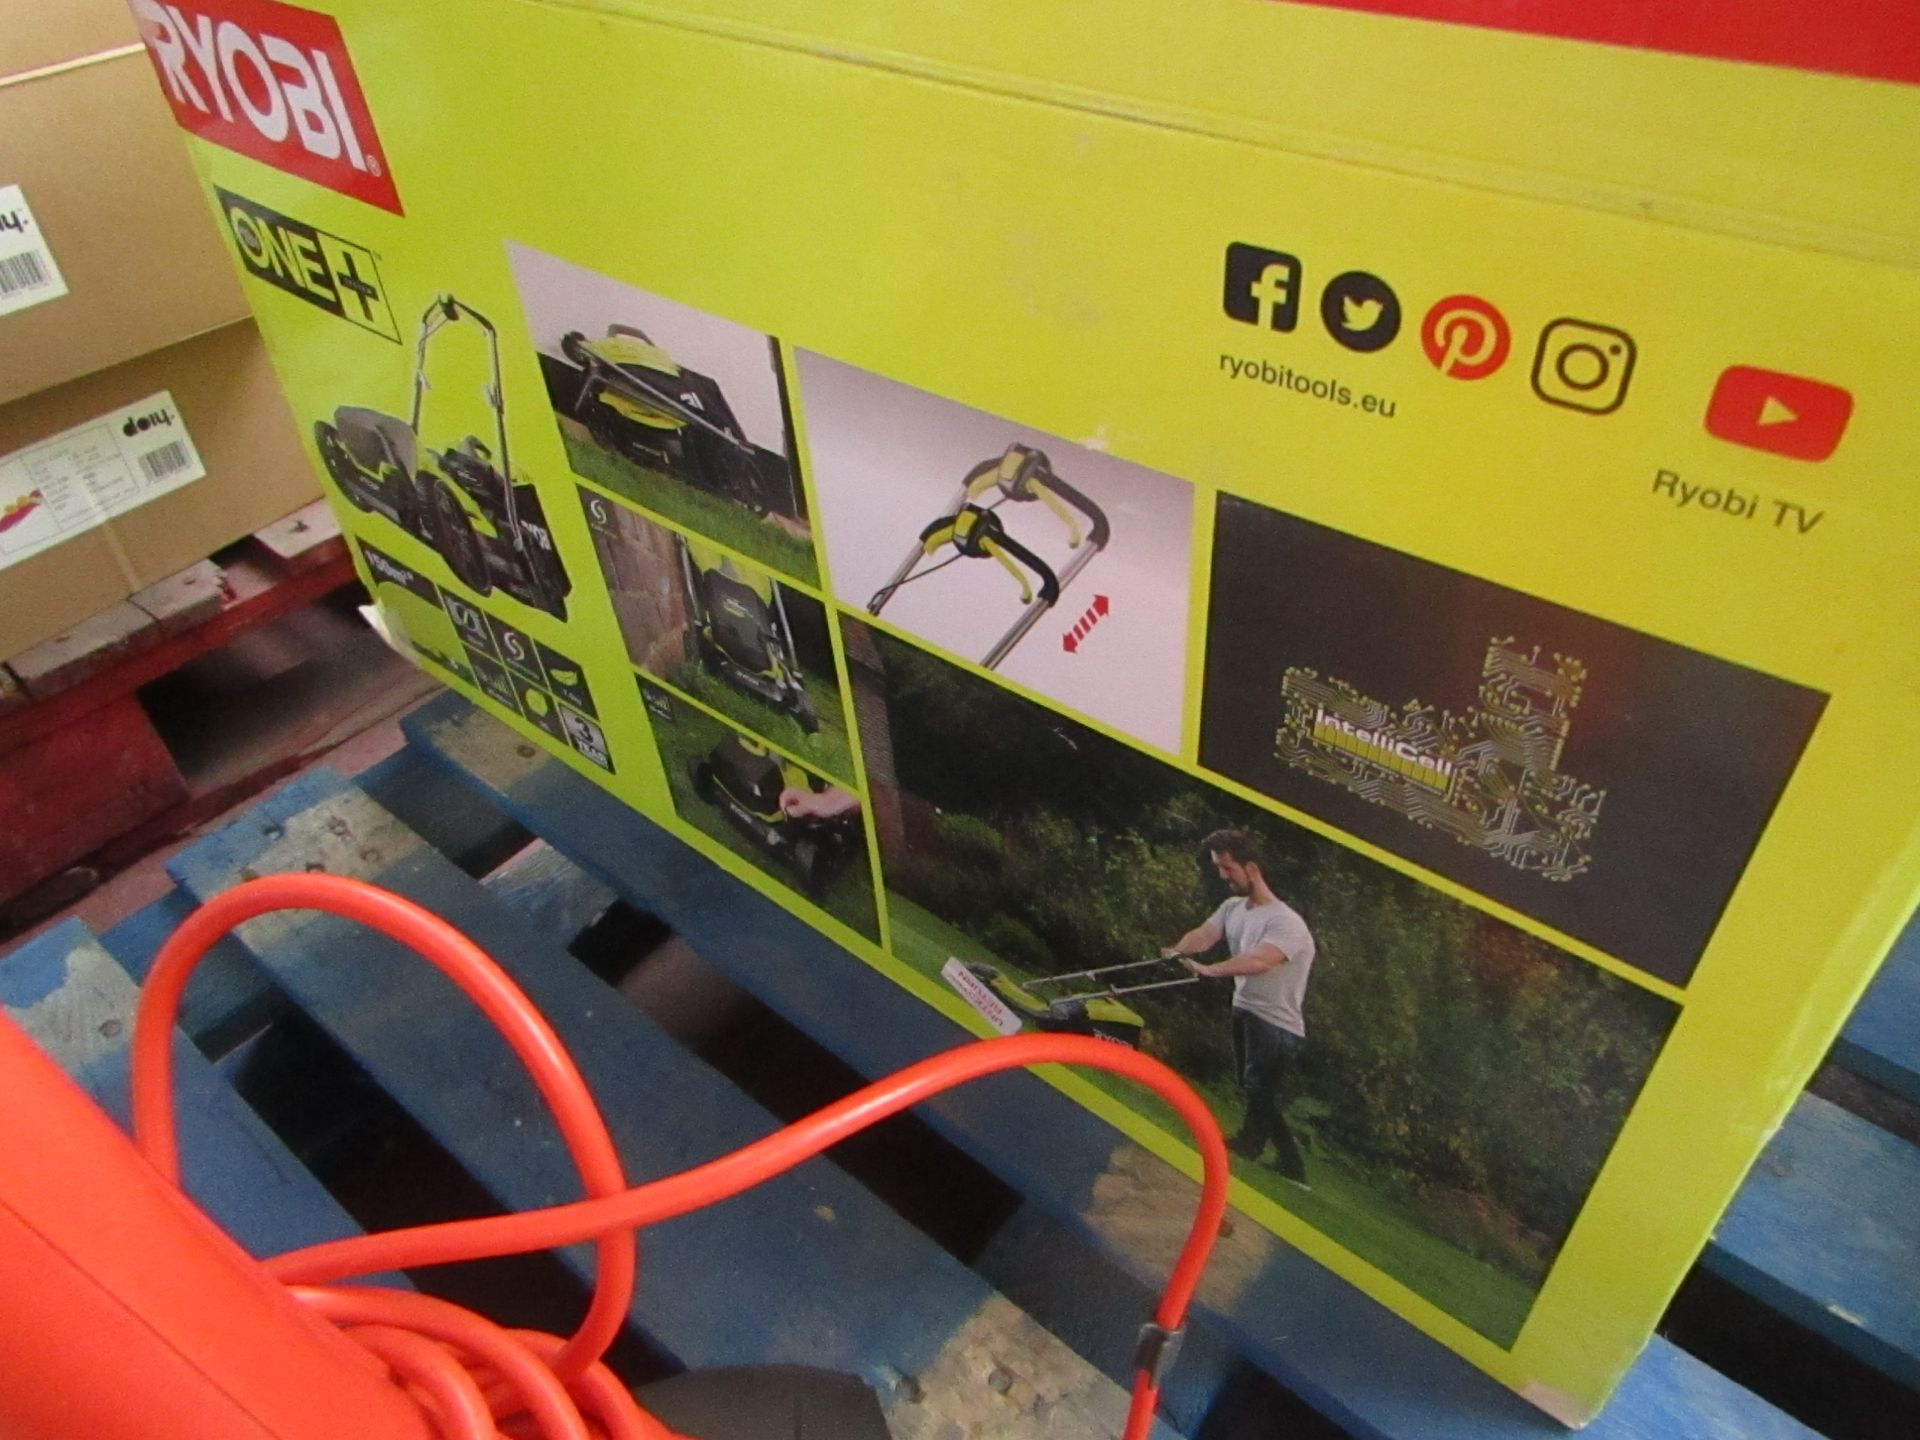 Lotto 8 - Ryobi One Plus 18V cordless Lawn mower, Missing battery and charger but is tested working with a